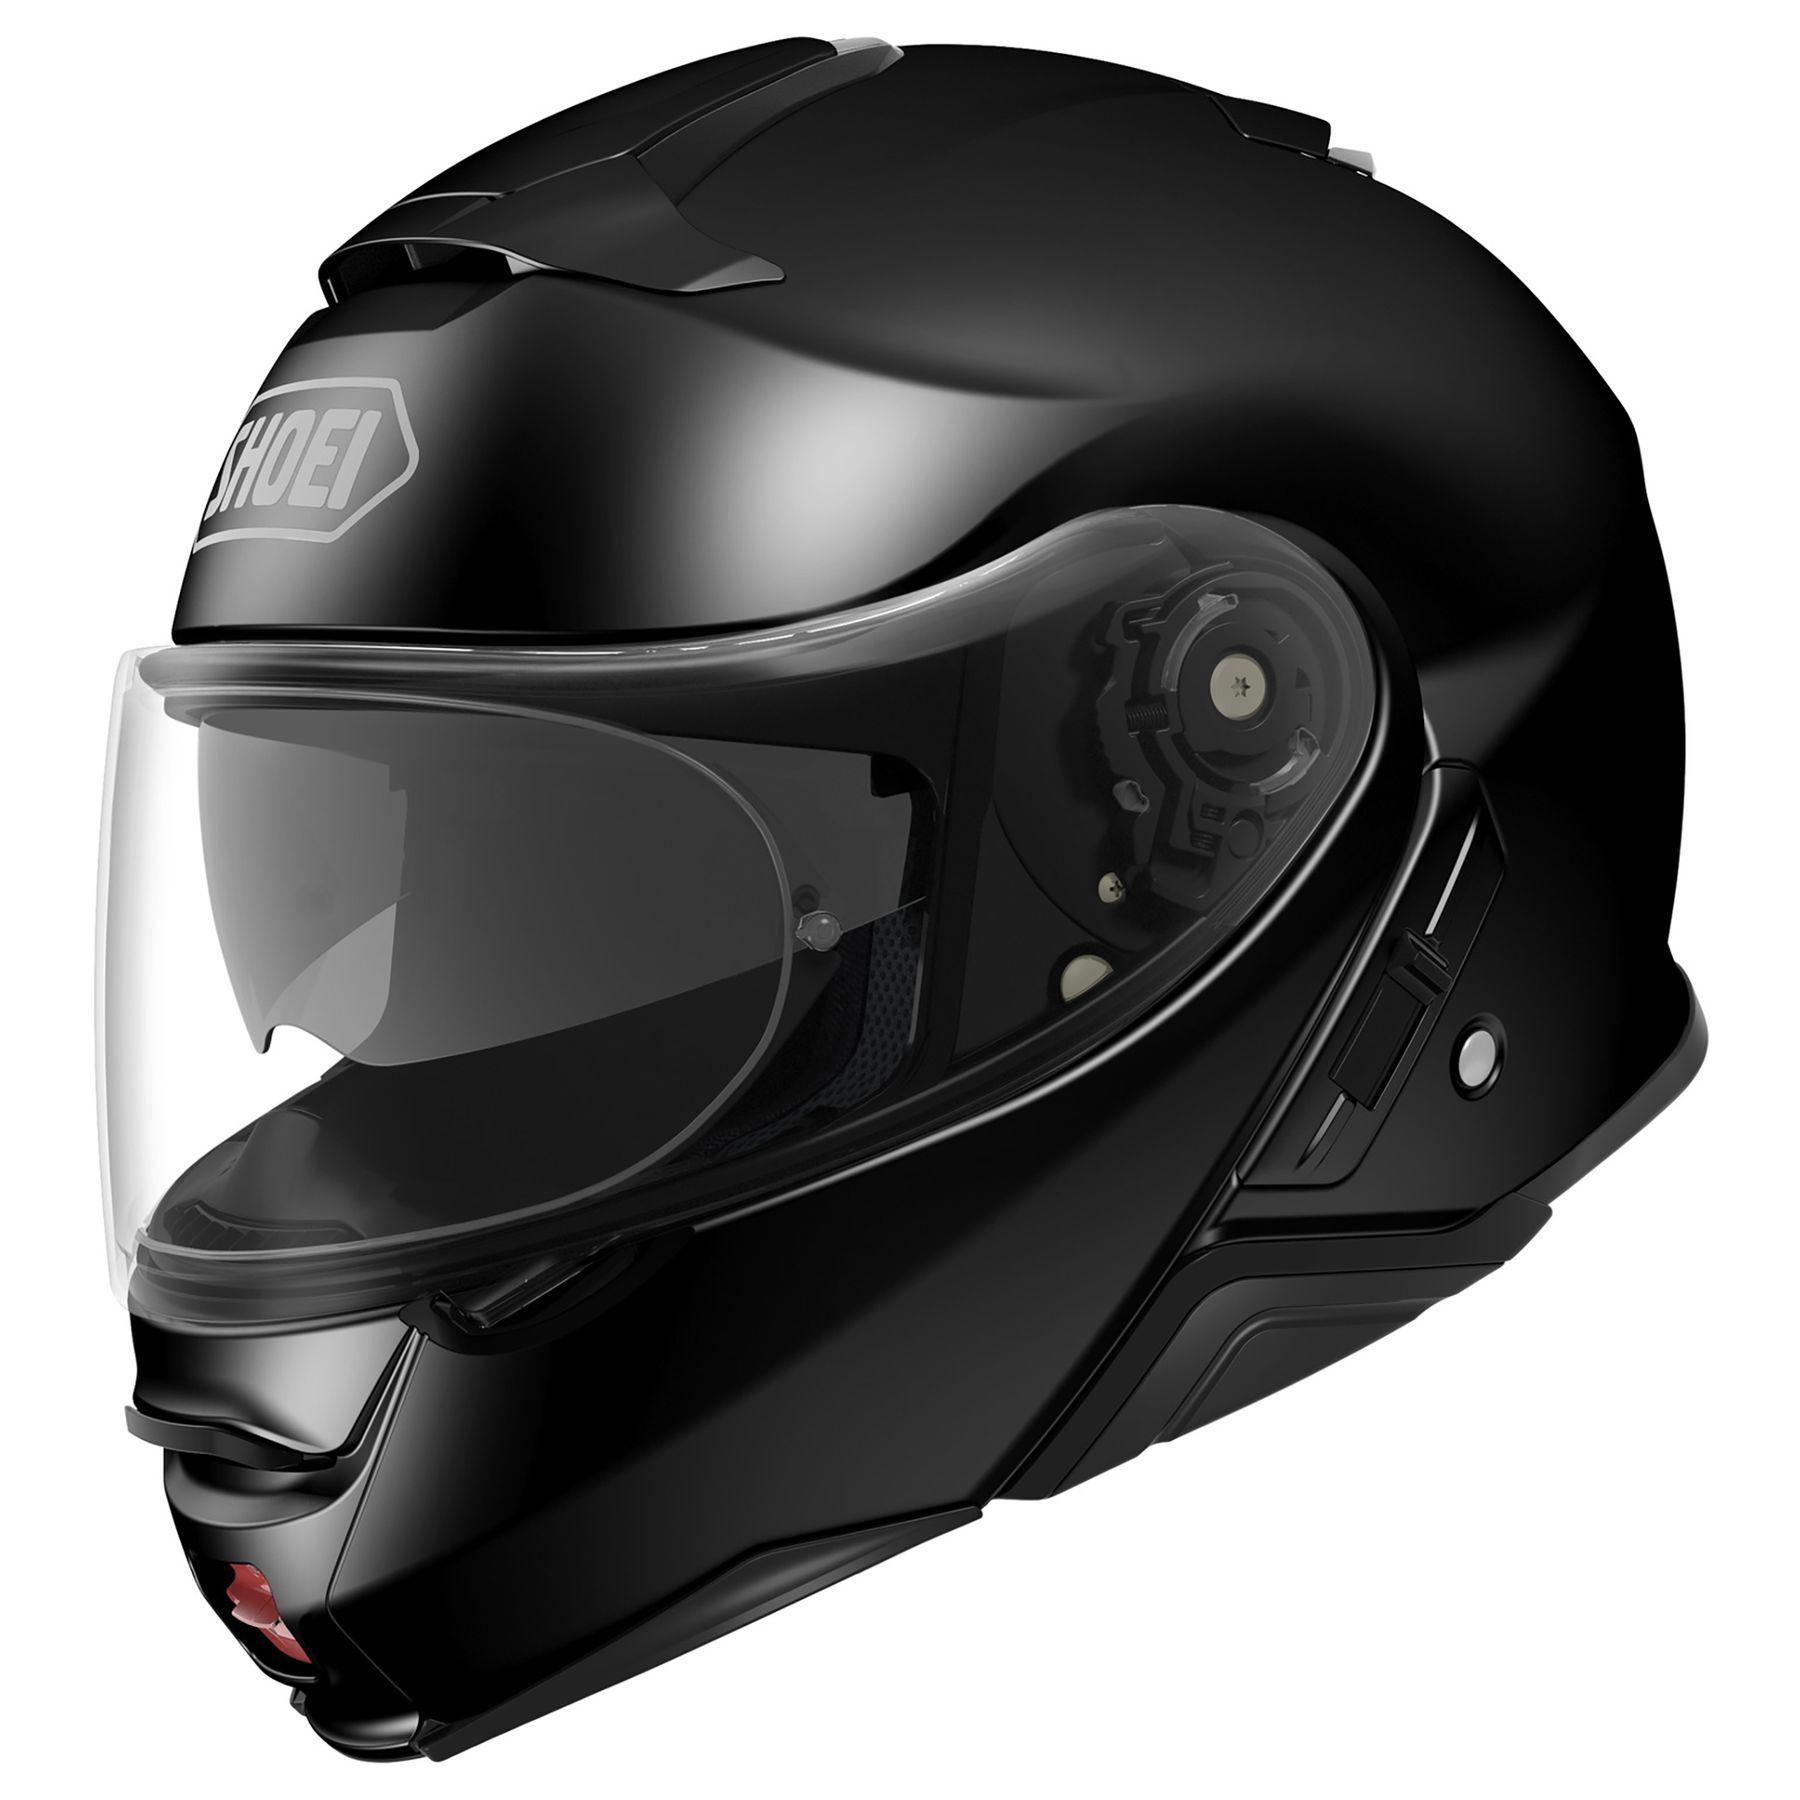 CAPACETE SHOEI NEOTEC 2 - EXCURSION PRETO BRILHO  - Motosports